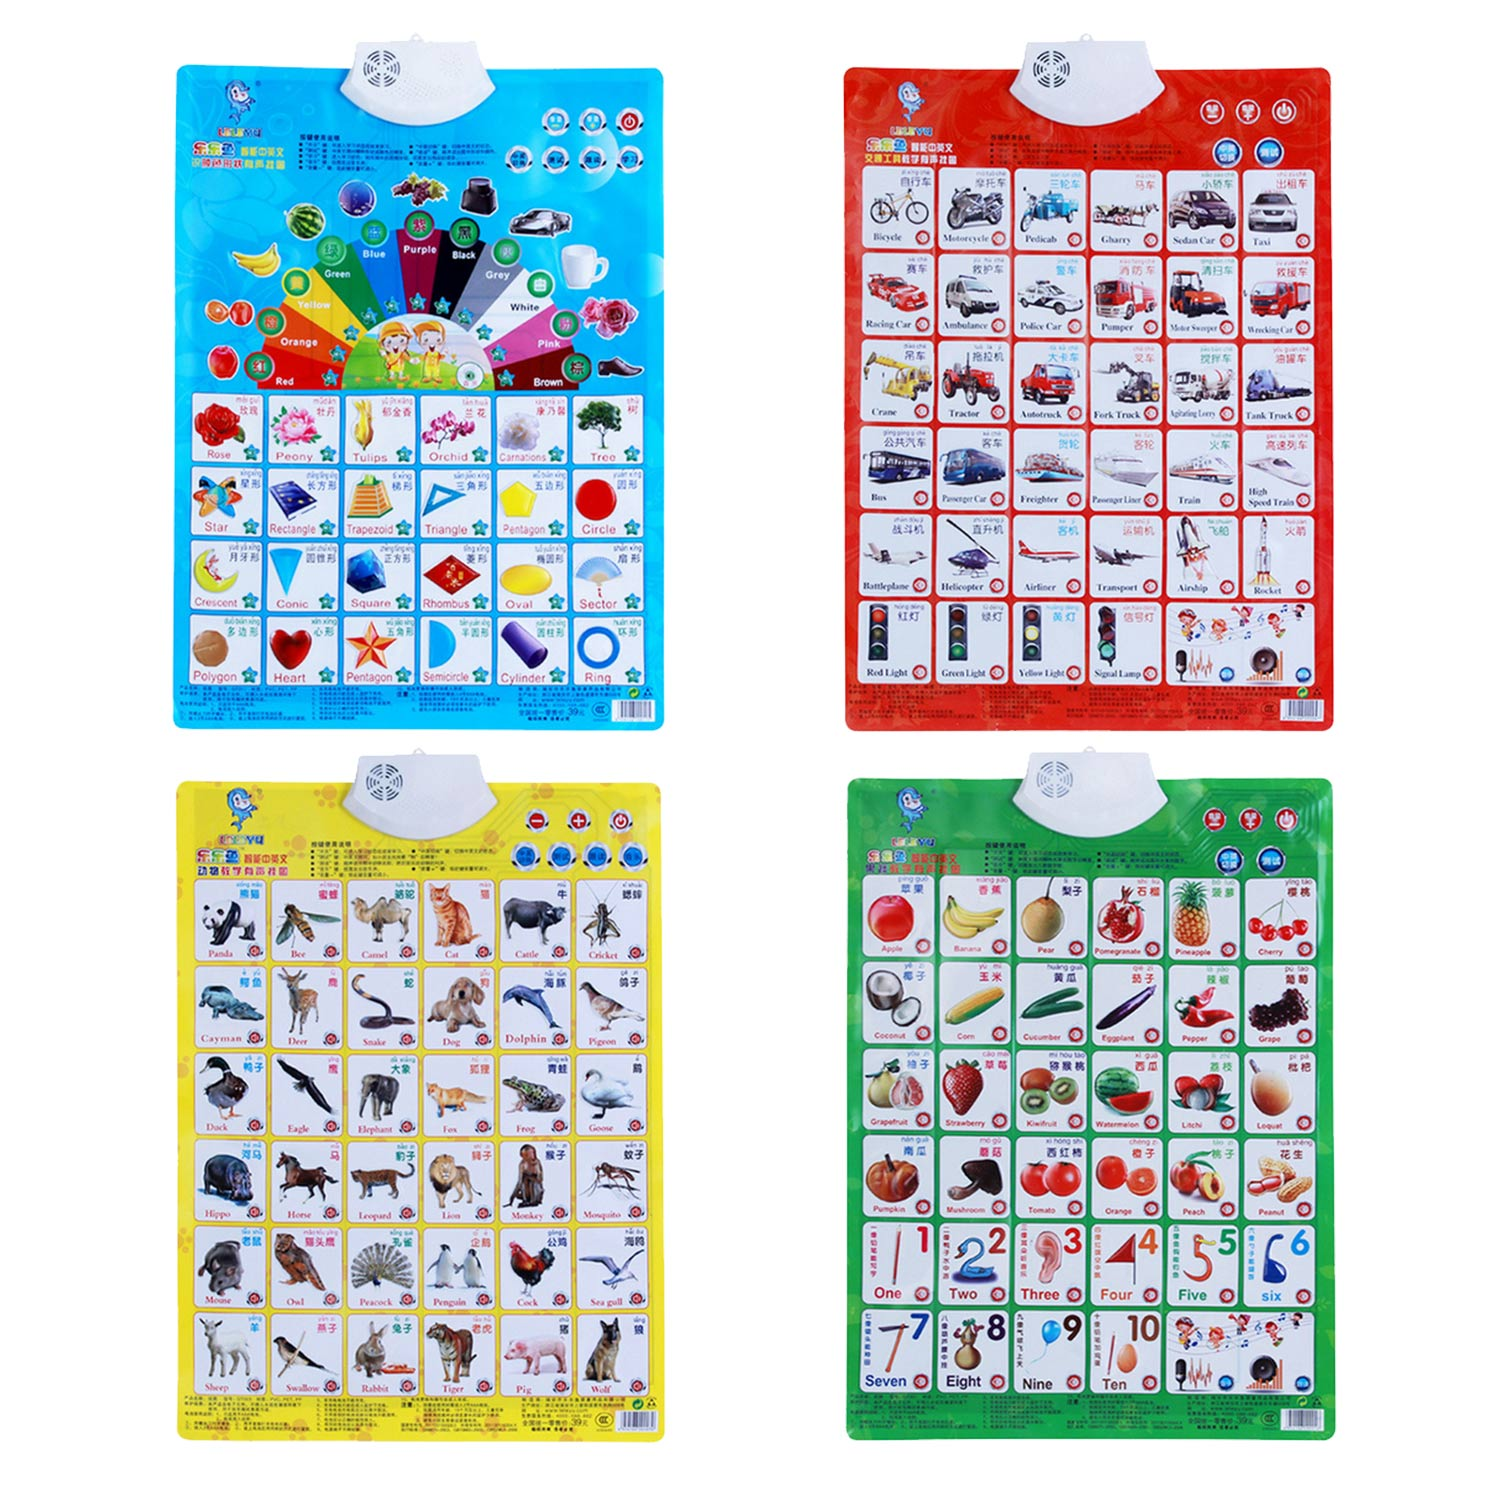 Besegad Kids Educational English Chinese Sound Wall Chart Poster For Children Toddlers Home Preschool Kindergarten Learning Toy